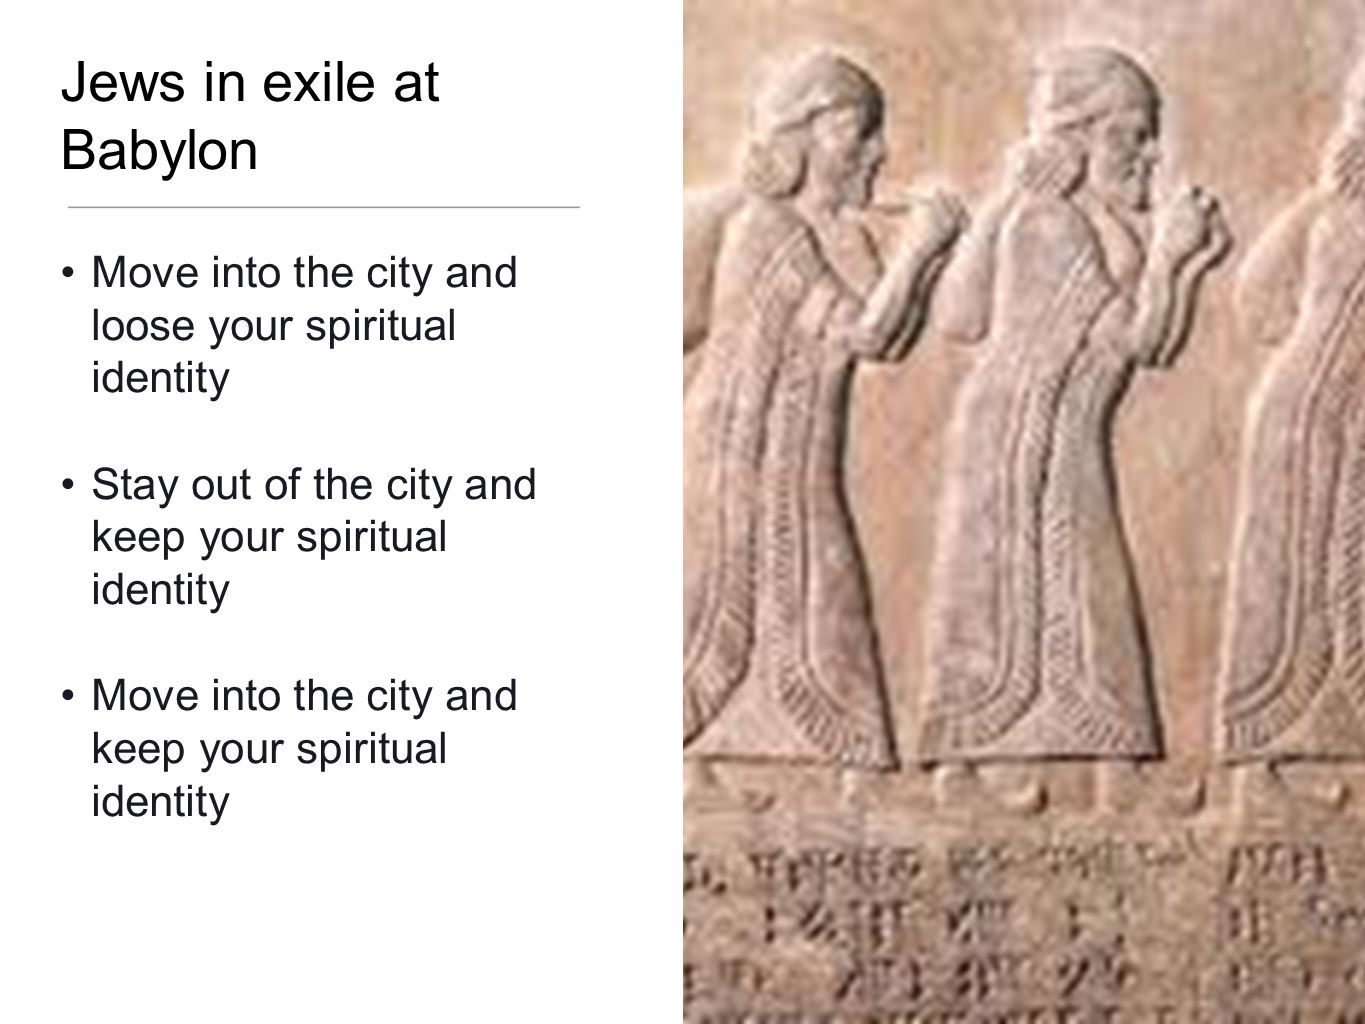 Jews in exile at Babylon